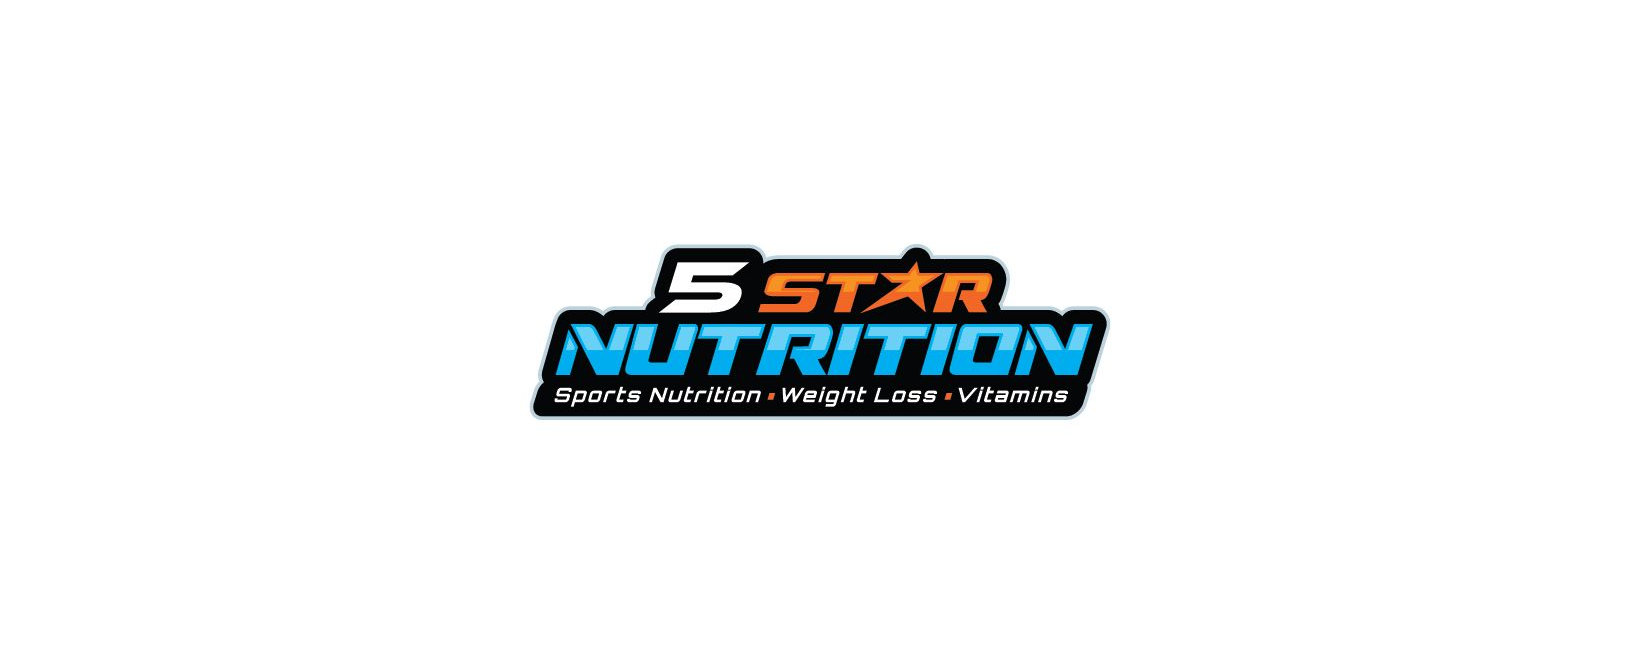 5 Star Nutrition Coupon Code 2021